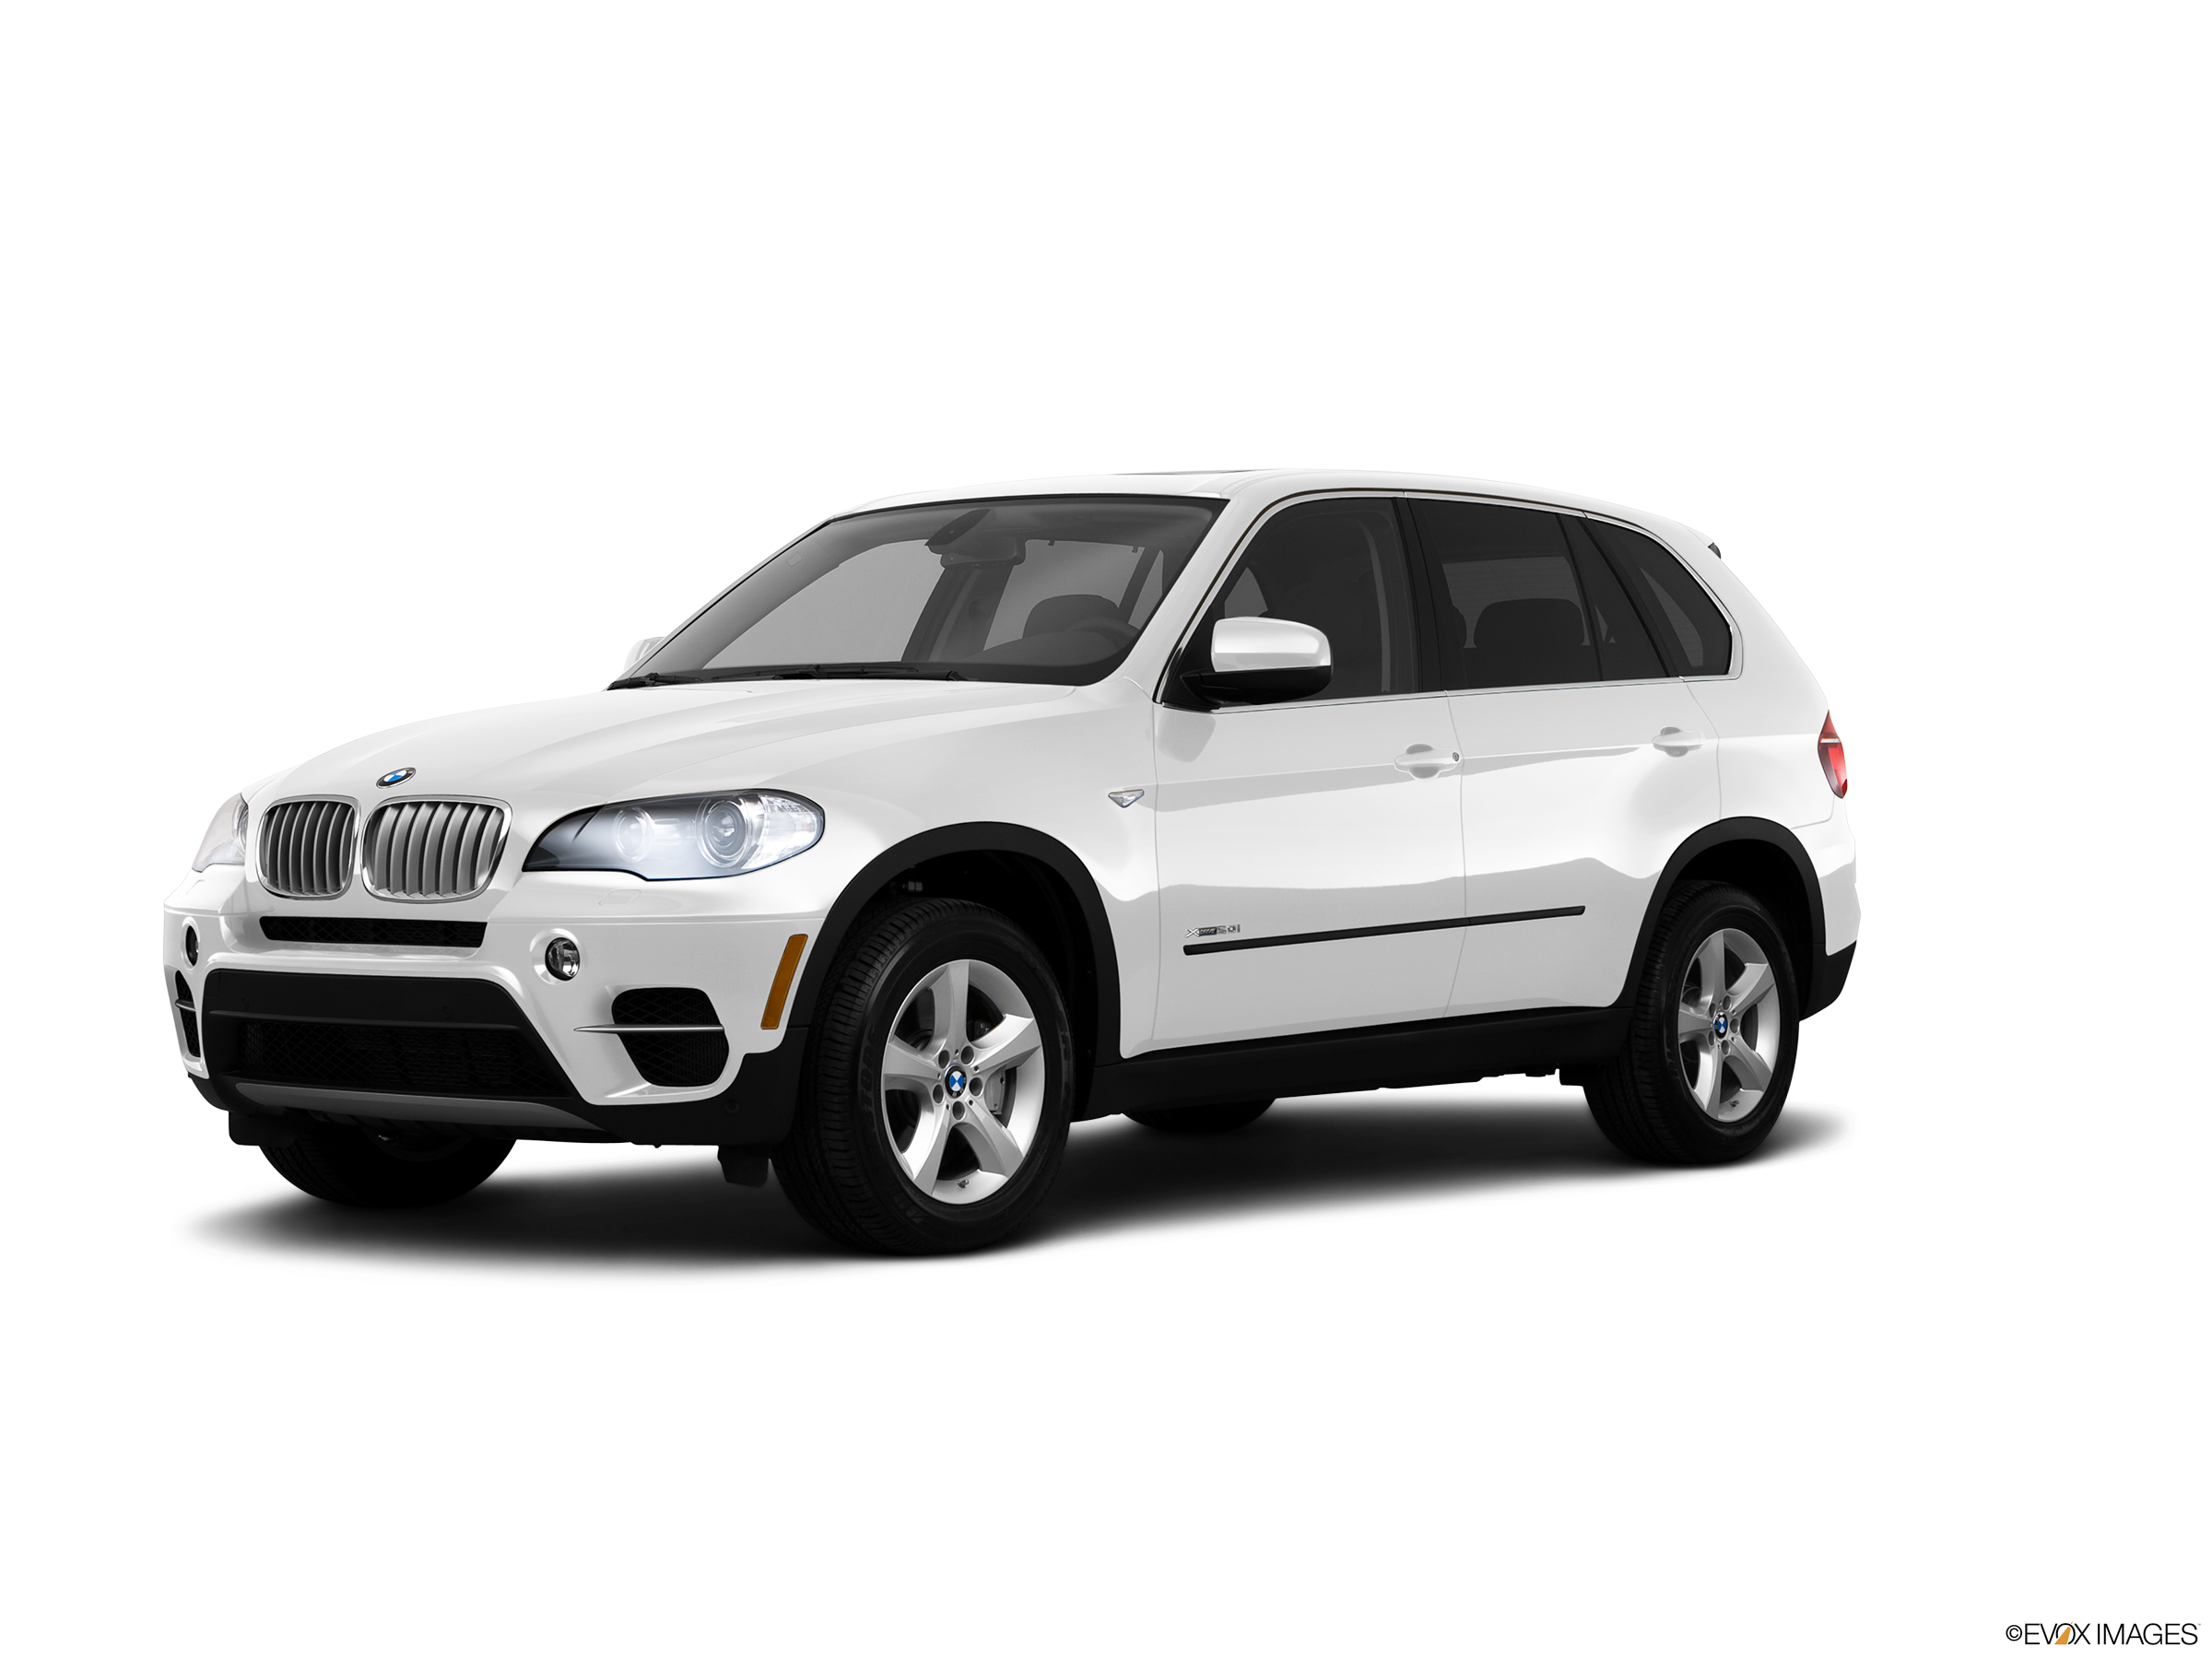 2011 Bmw X5 Values Cars For Sale Kelley Blue Book